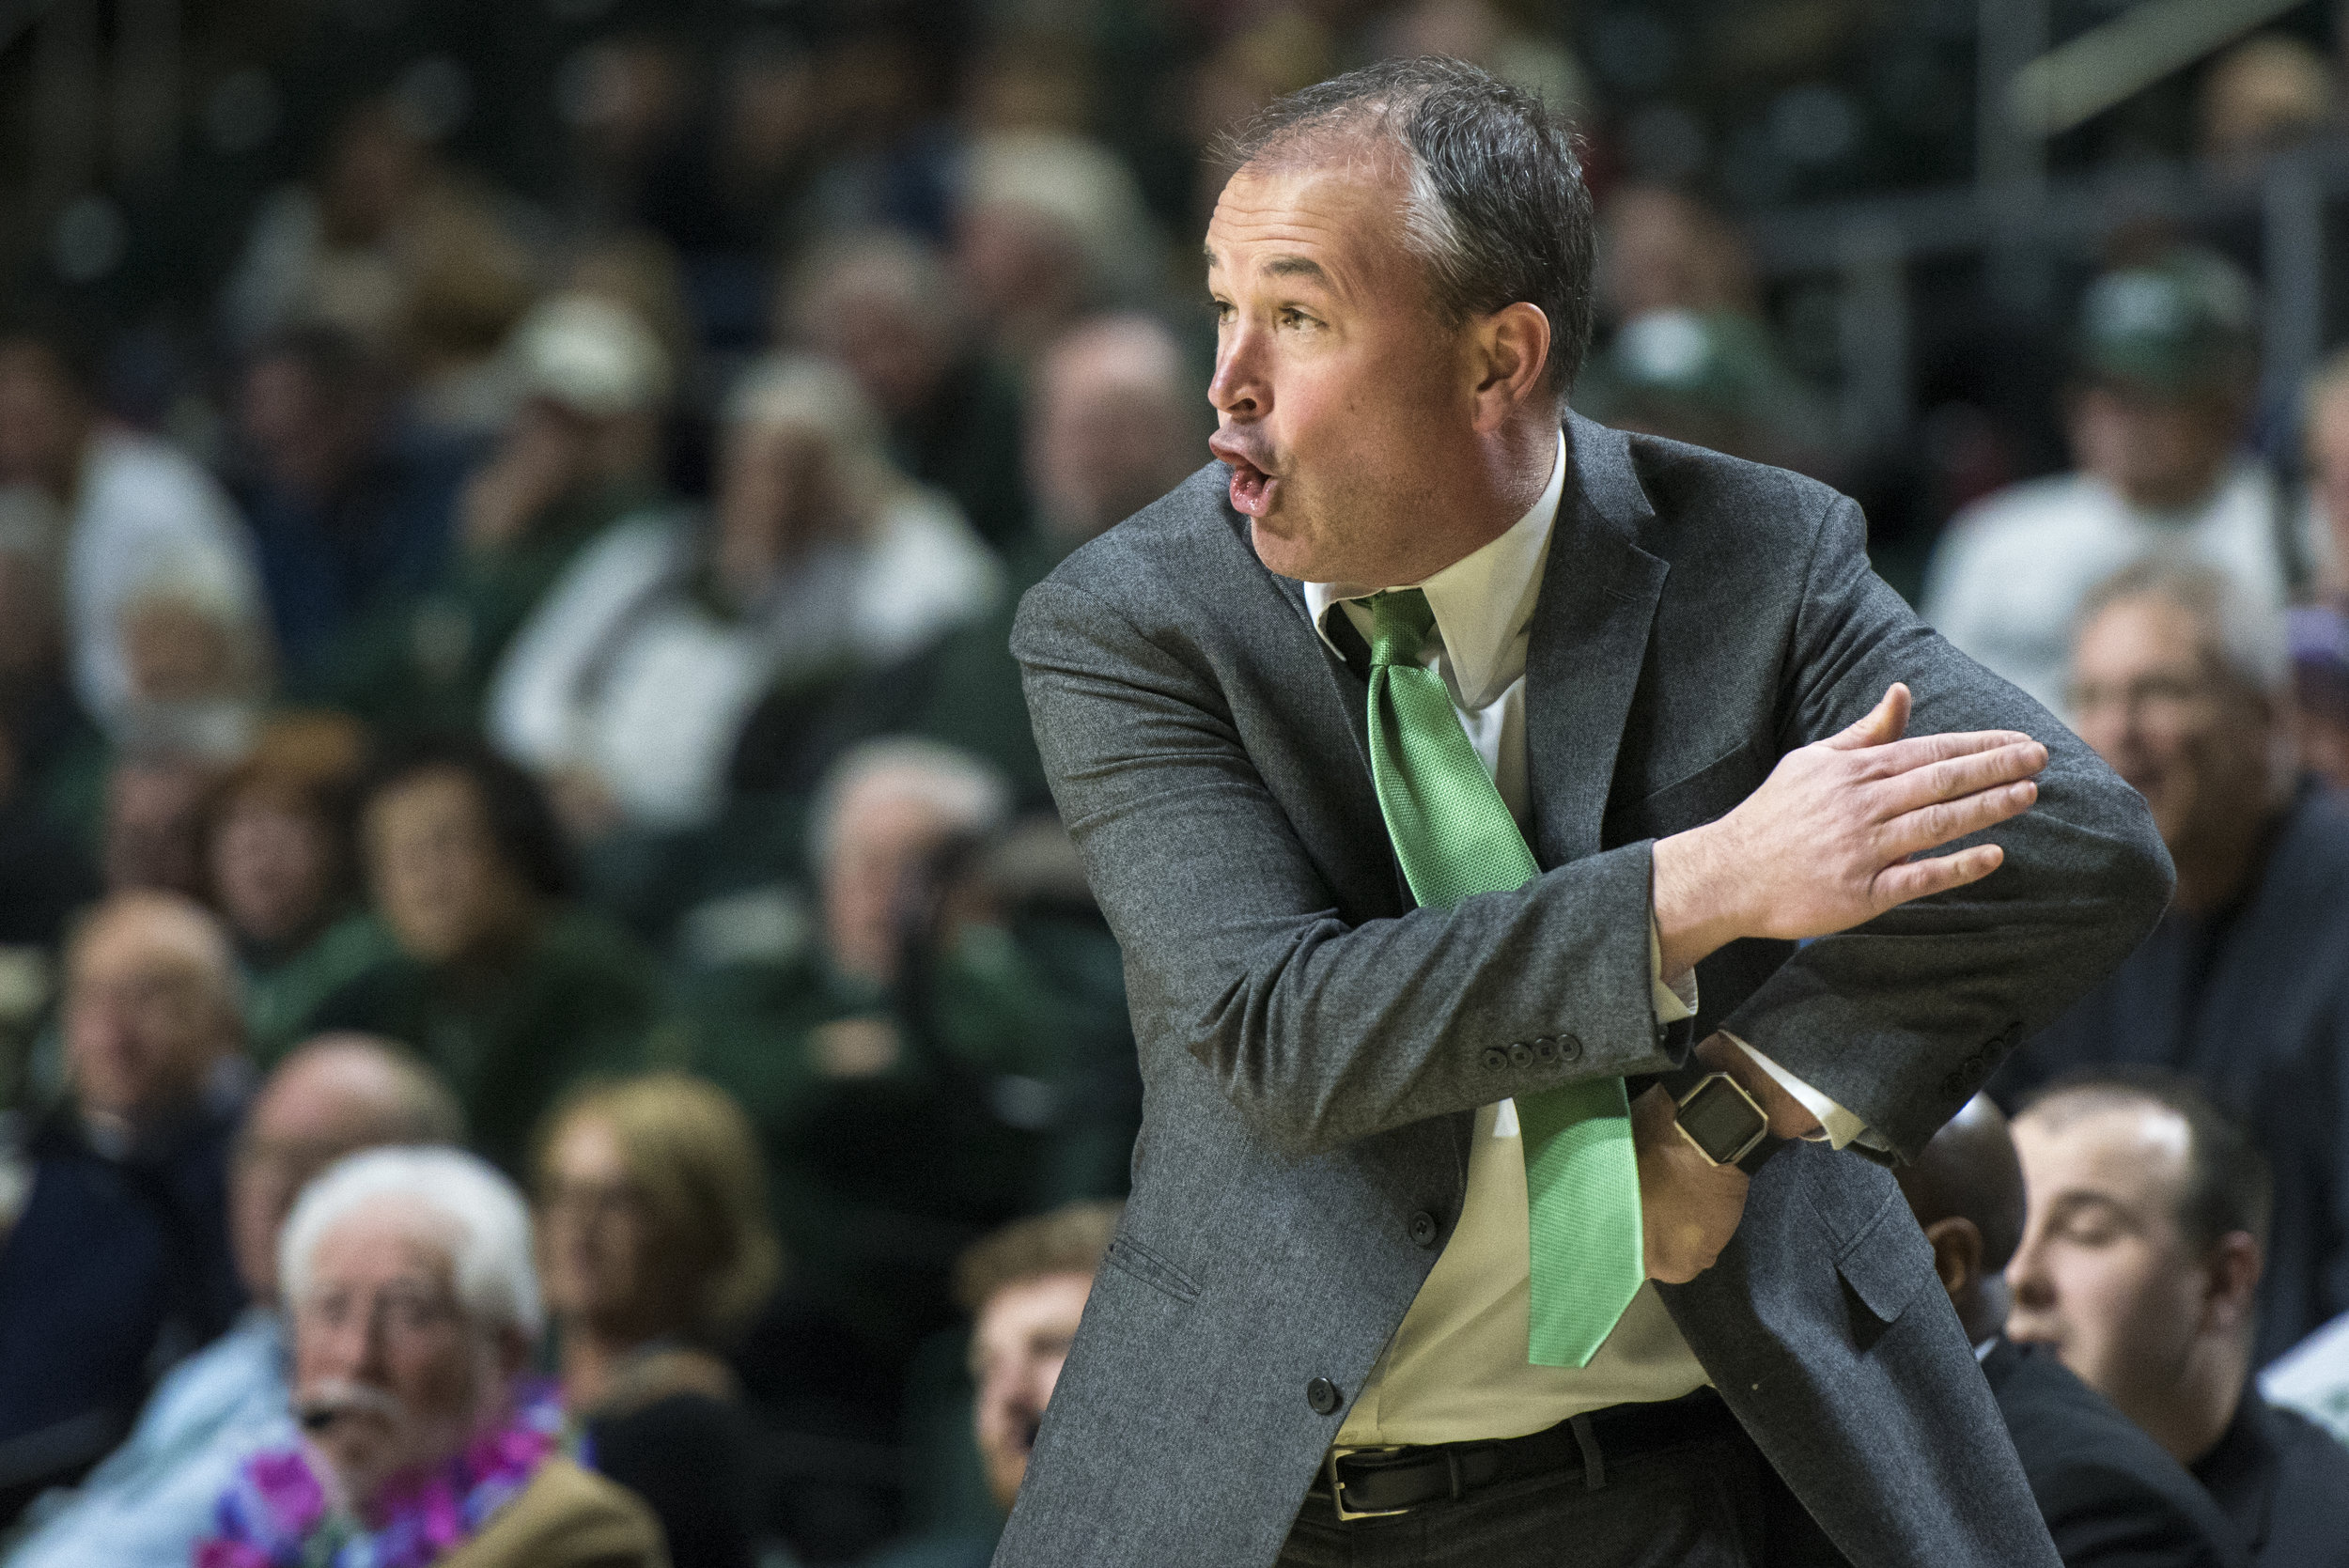 Ohio Bobcats Coach Saul Phillips yells in frustration at his players during the game against Toledo on Jan. 16, 2017 which the Bobcats lost 91-57.